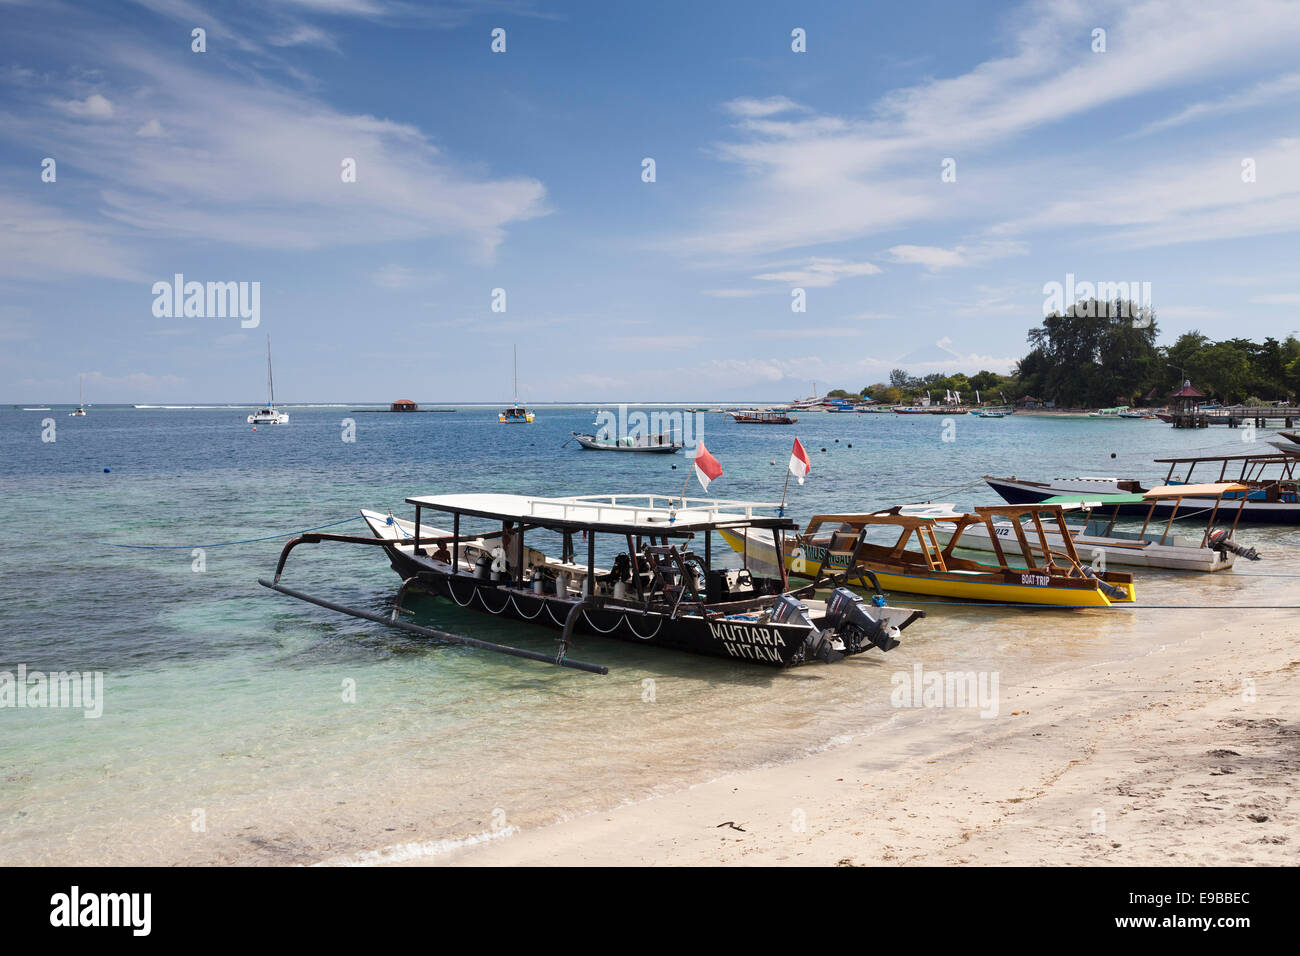 Boats moored on beach, 'Gili Air', 'Gili Islands', Lombok, Indonesia - Stock Image